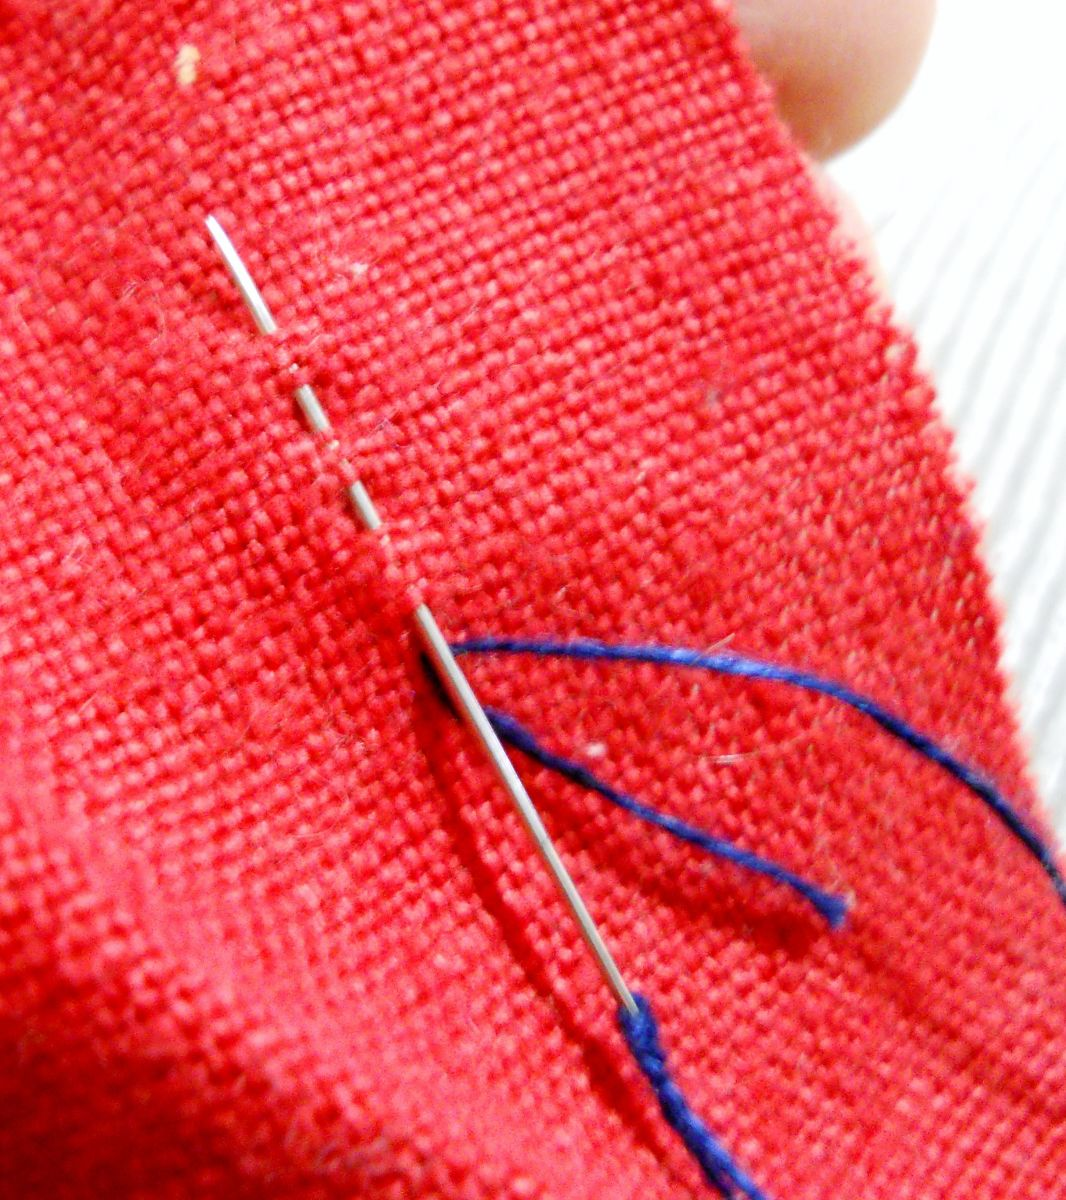 Basic Stitches for Hand Sewing with Step by Step Pictures